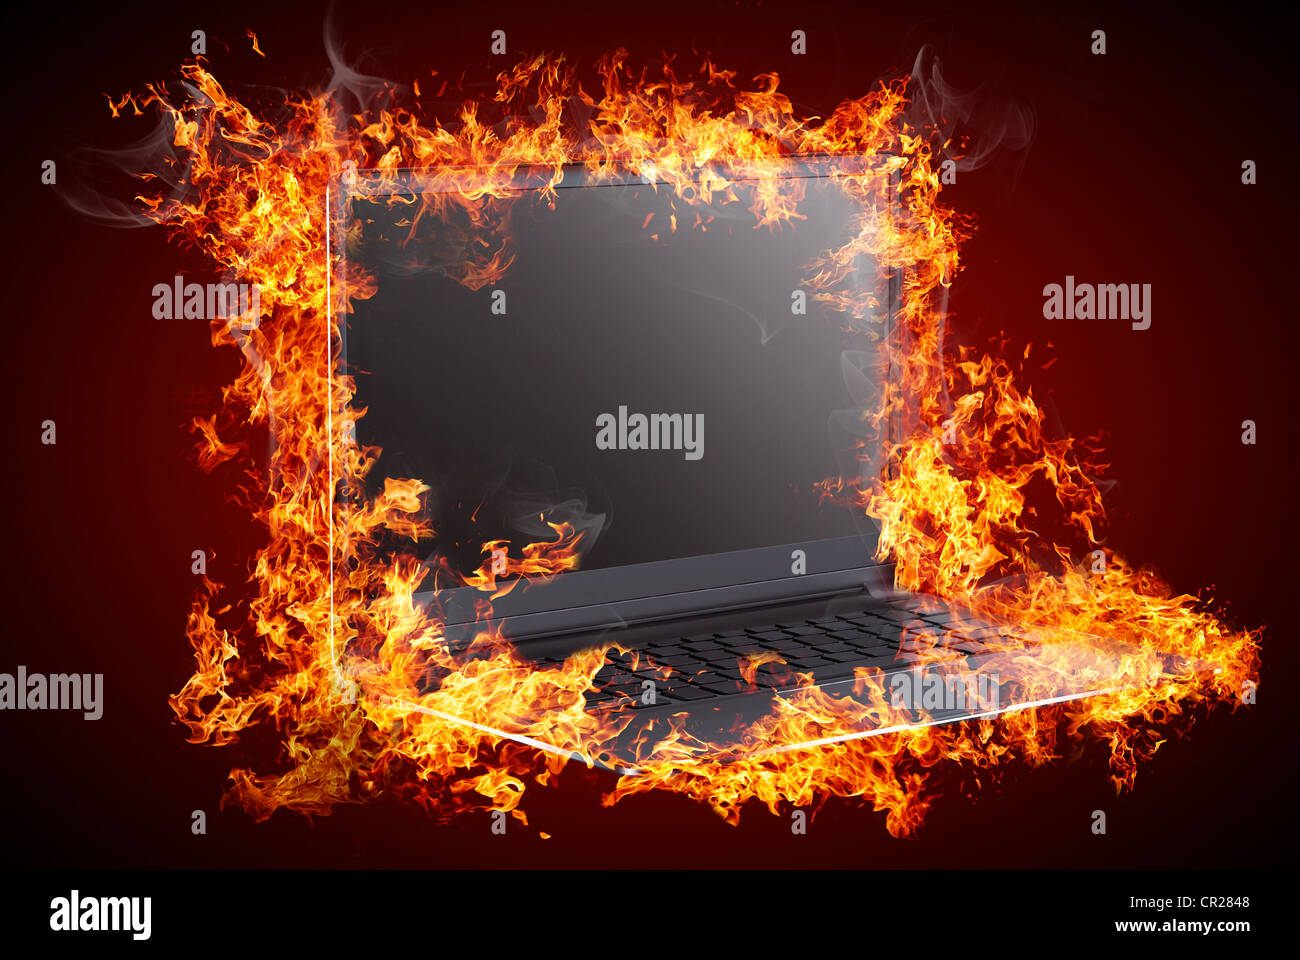 Computer in fire Stock Photo